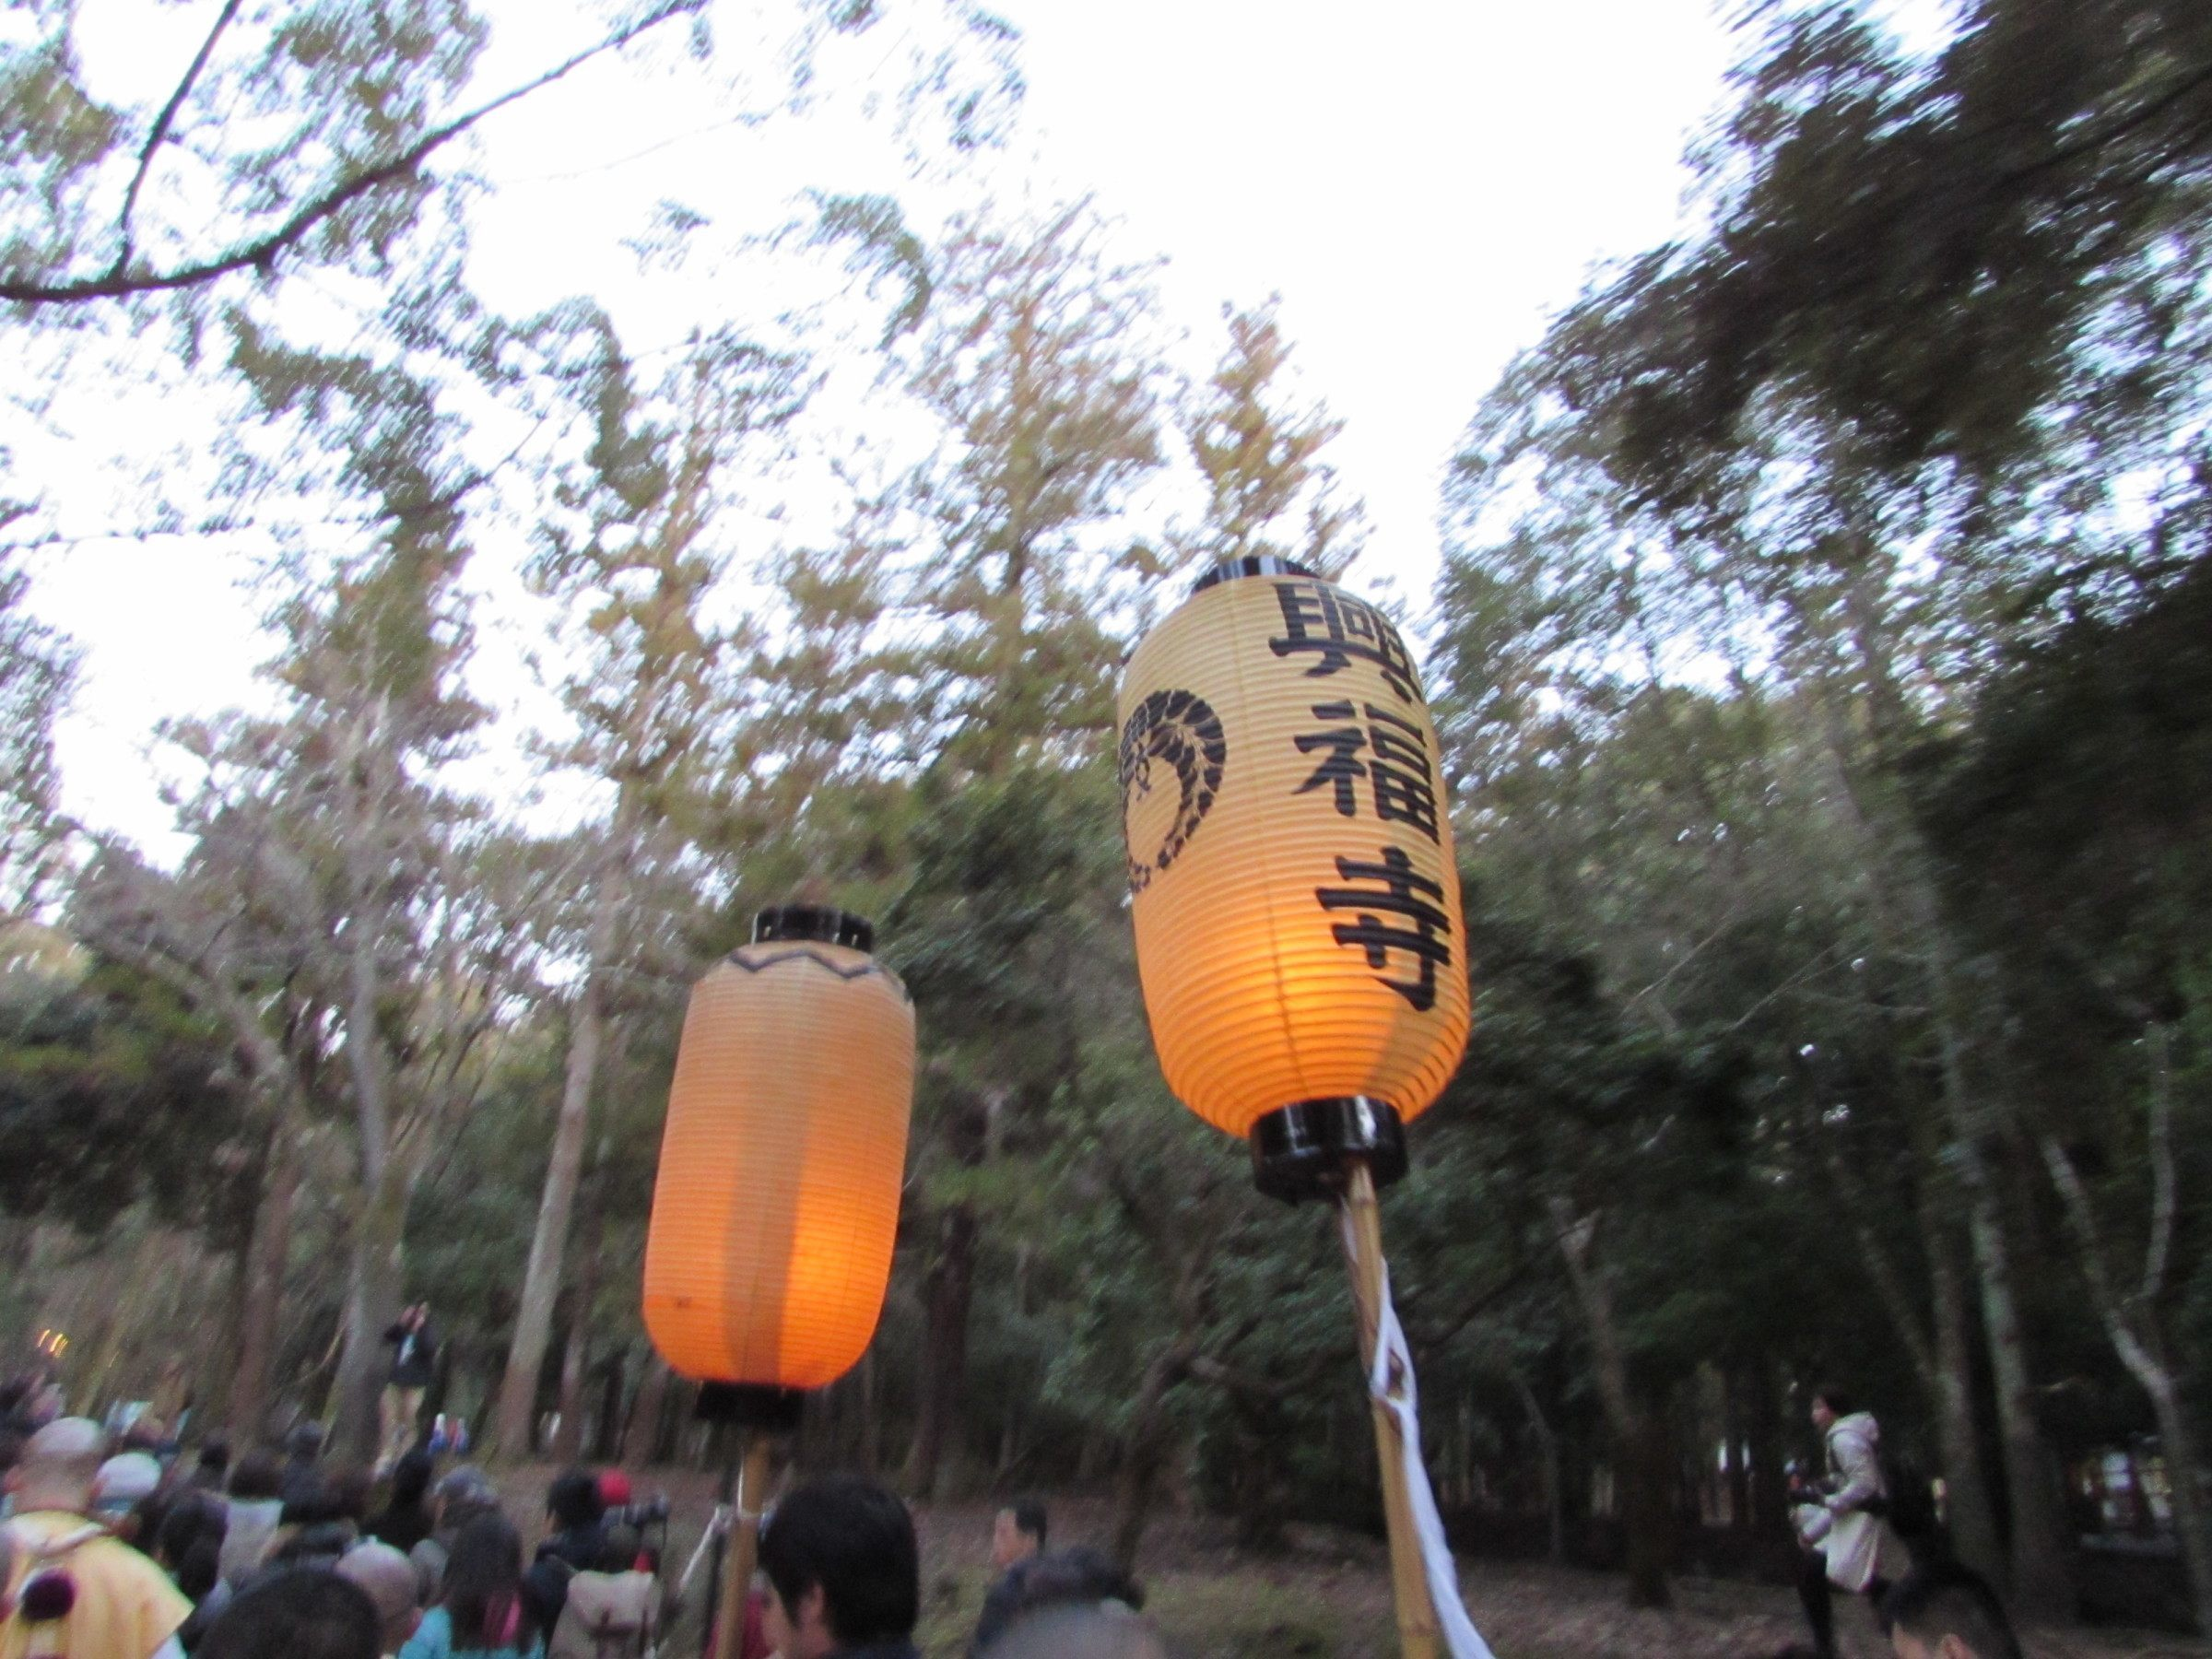 ... and from the torch three lanterns are lit. There is one lantern representing each of Nara's main religious sites; Todai-ji temple, Kofuku-ji temple, and Kasuga shrine. The lanterns are then paraded through the city towards the Mt. Wakakusa.